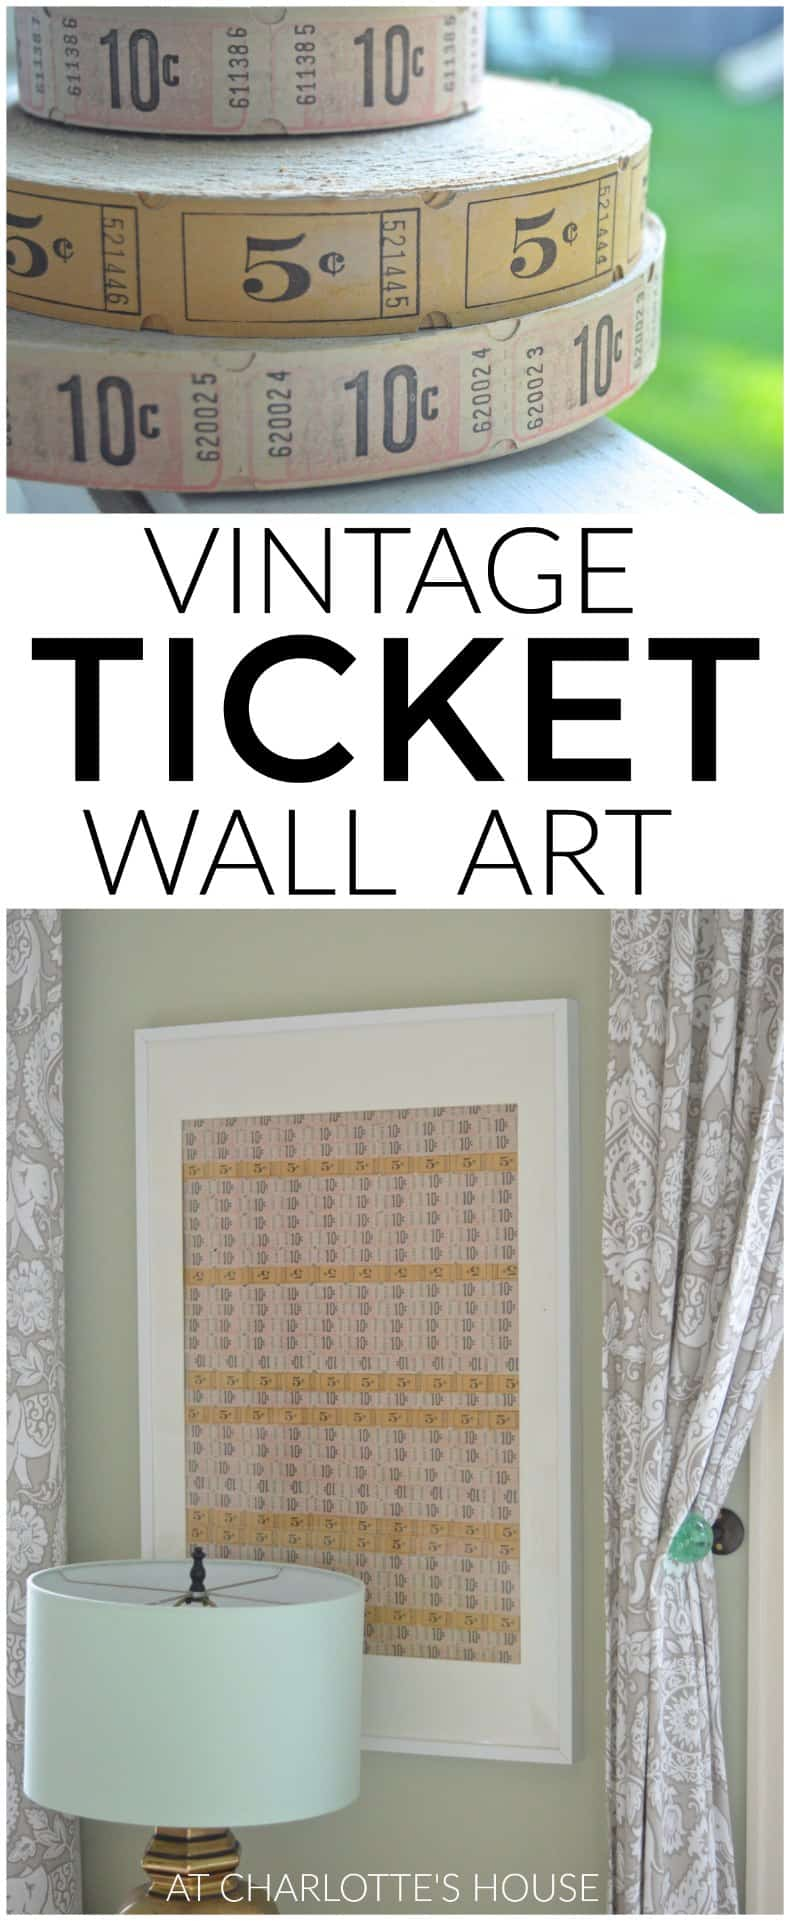 Using vintage tickets to make simple wall art.